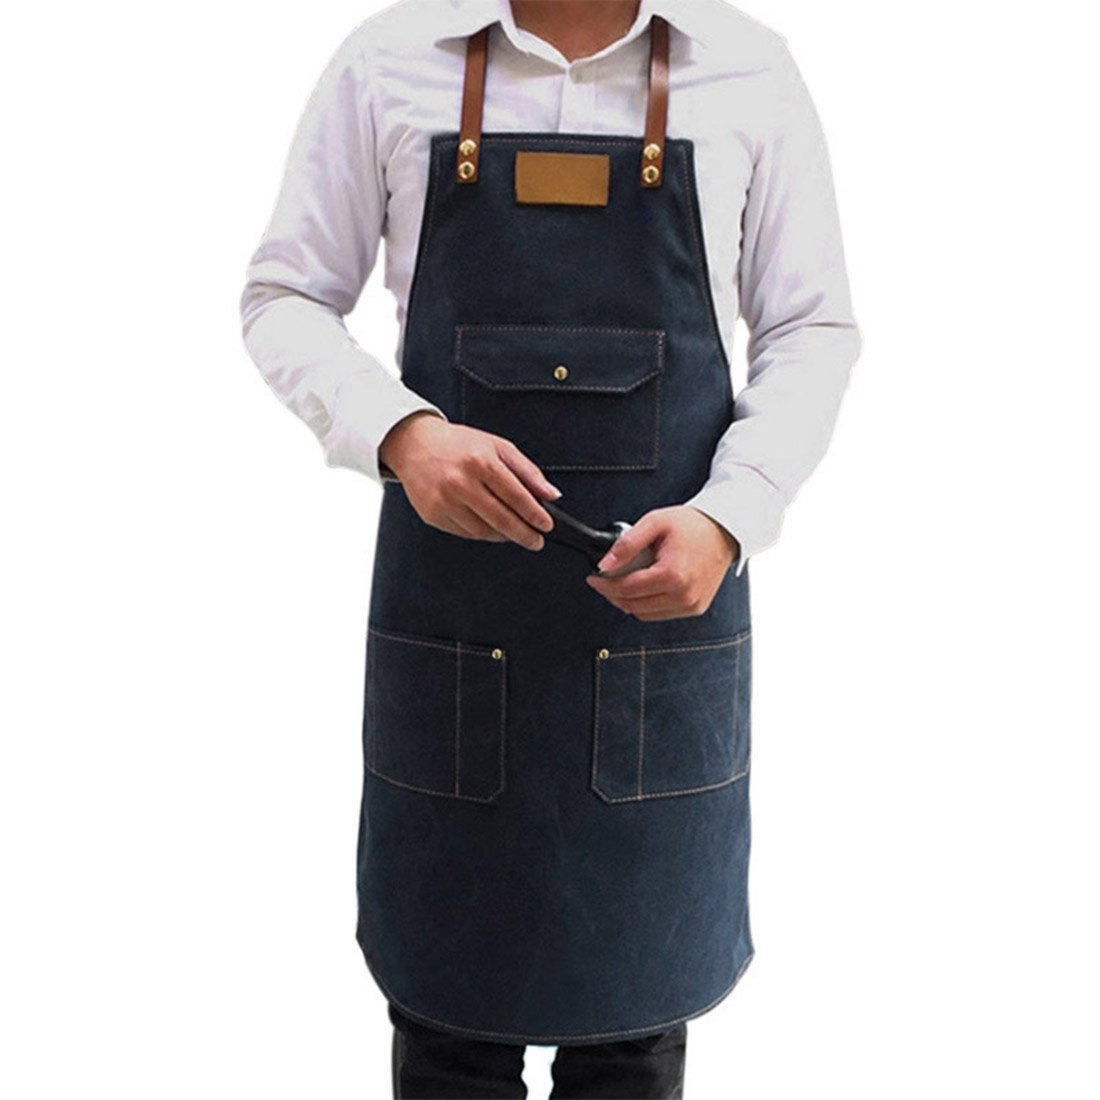 YUENA CARE Apron with 3 Pocket Men Women Denim Bibs Adjustable Strap for Coffee House Kitchen Cooking